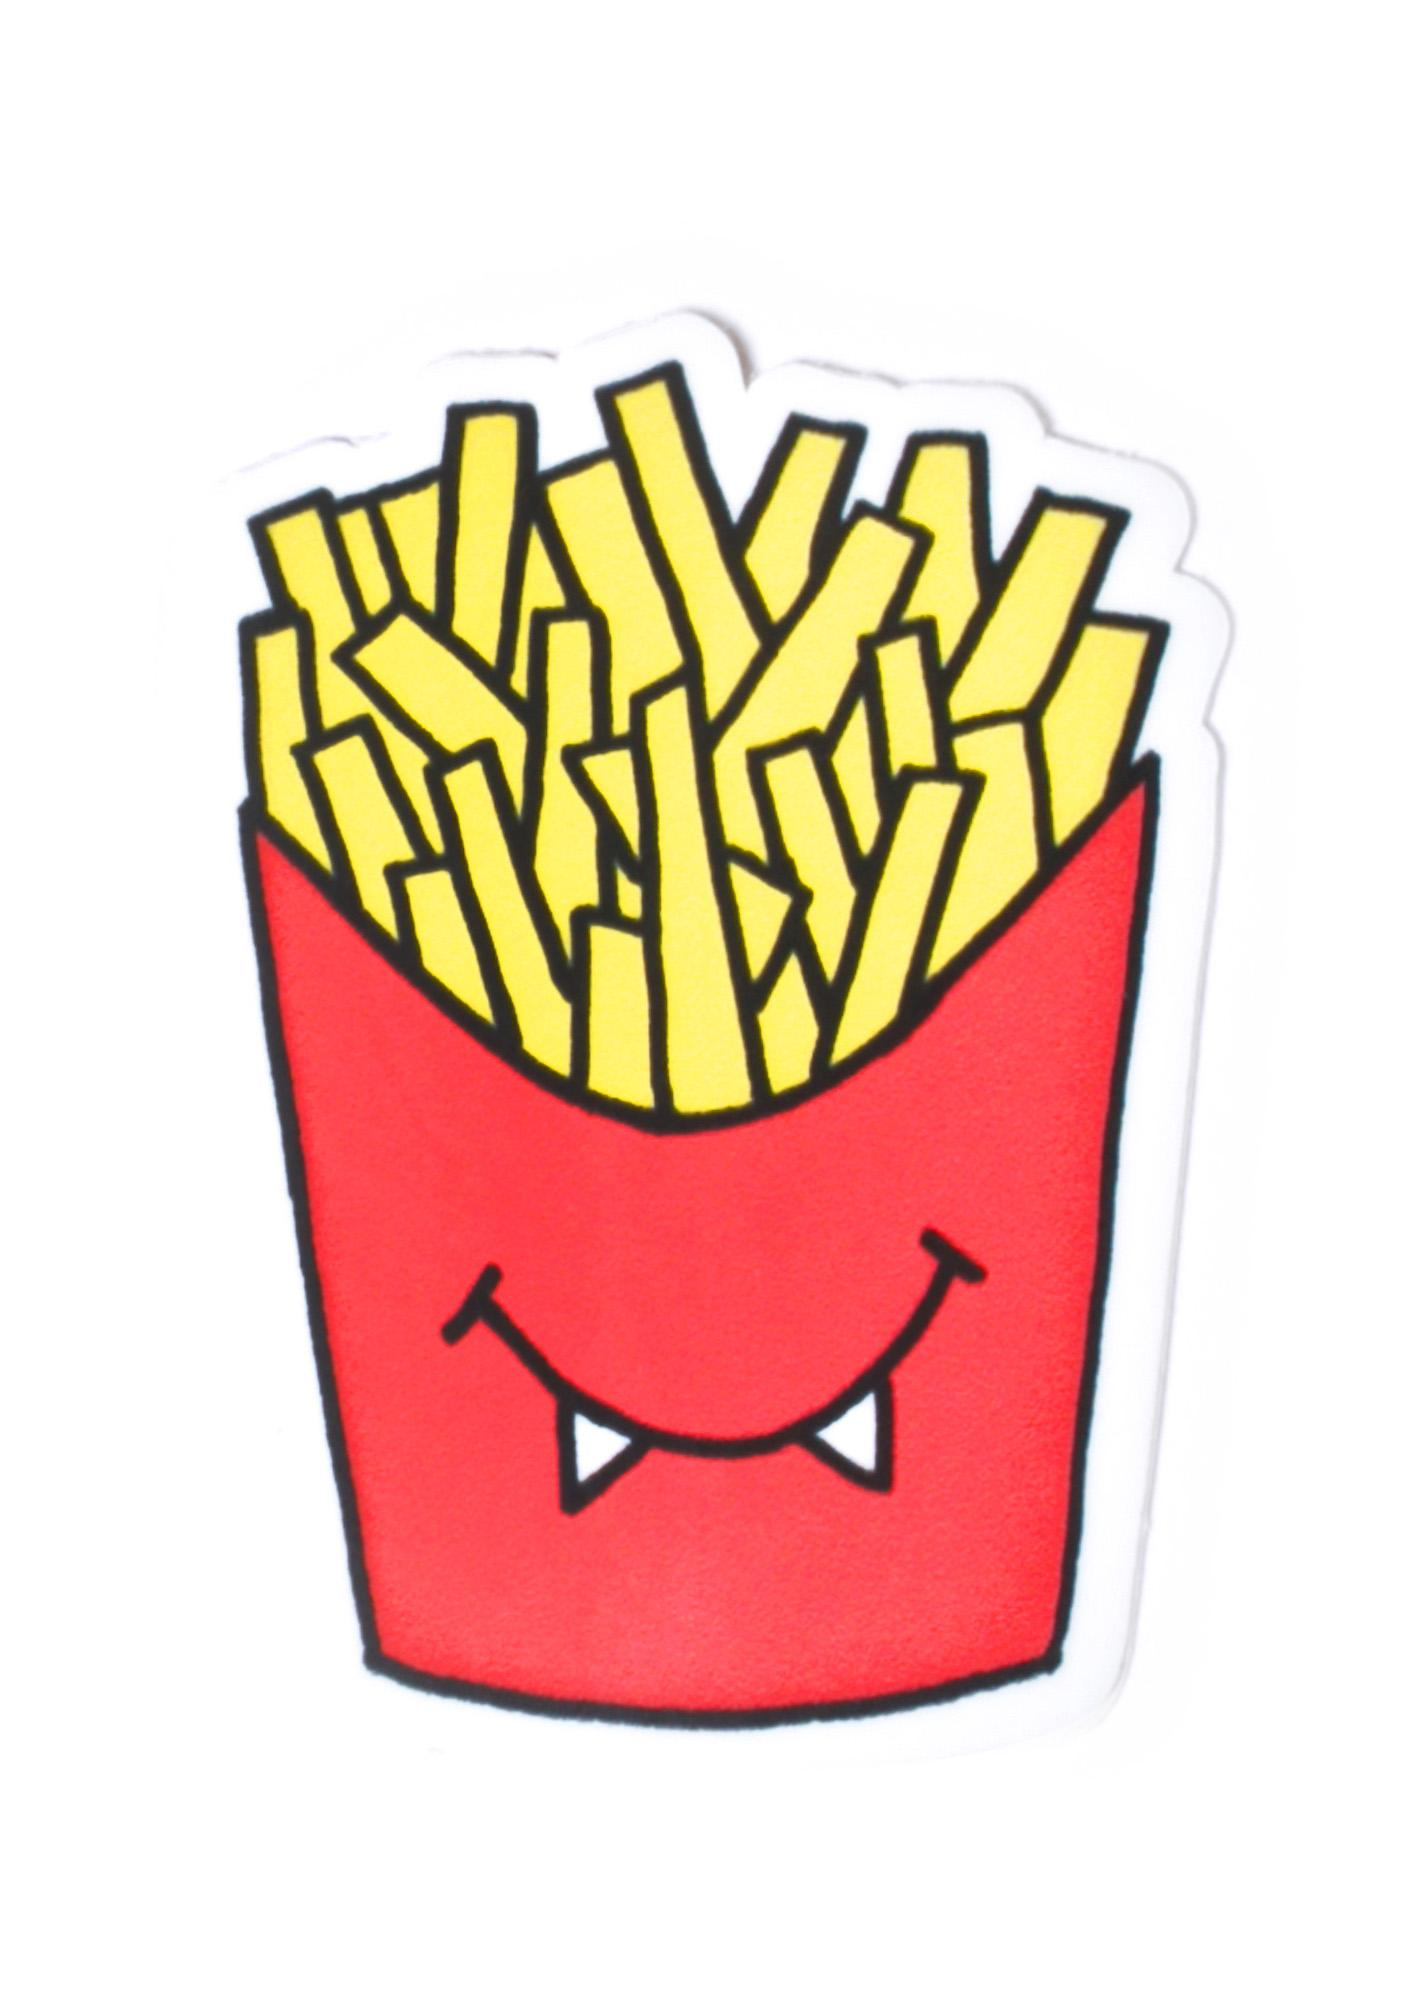 Snack Attack Sticker Pack